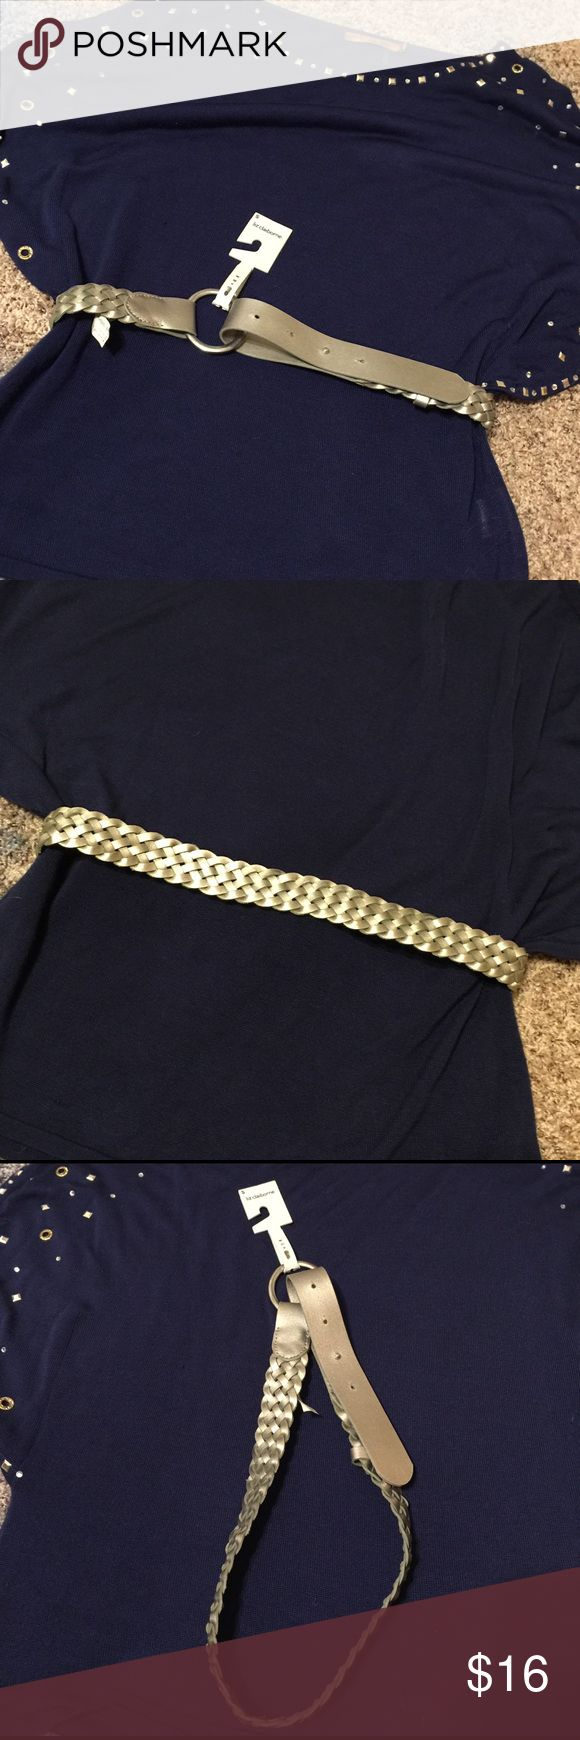 ✨Liz Claiborne ✨Silver Braided Belt This snazzy silver belt is perfect for adding a little flare💃🏼to that dull 😐outfit. The belt is ✨✨NWT ✨✨and original price of $32 😮 is shown in pictures. The size is small. Liz Claiborne Accessories Belts